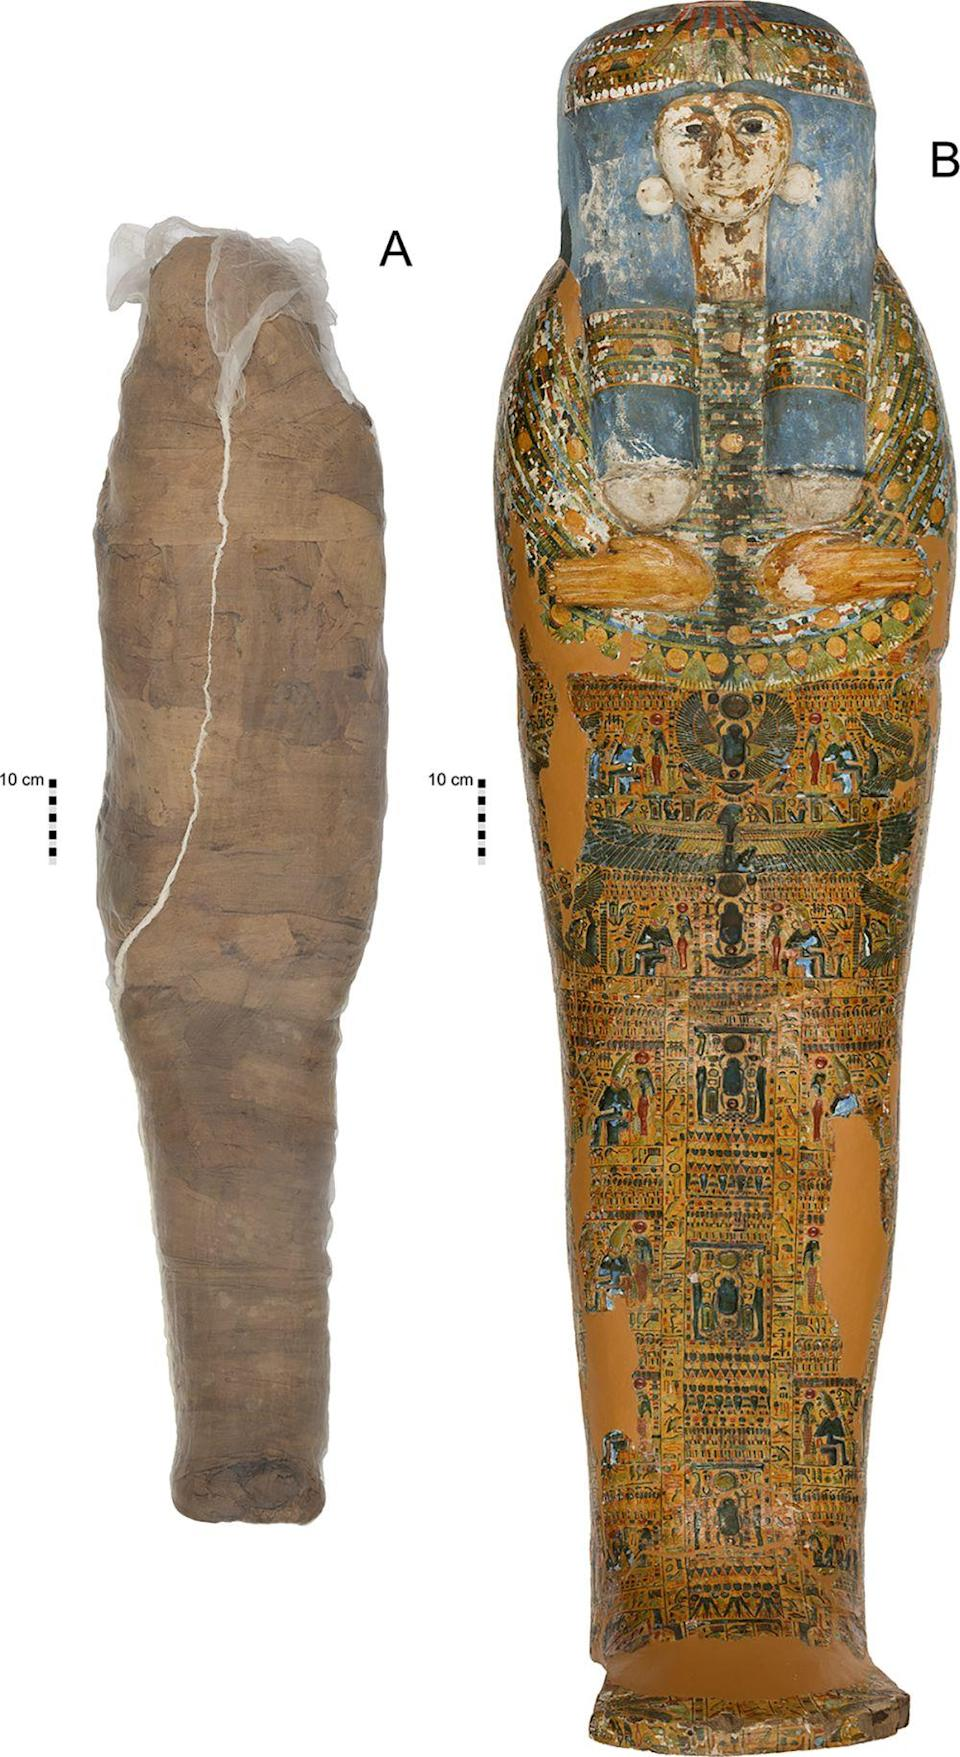 Mummified individual and coffin in the Nicholson Collection of the Chau Chak Wing Museum